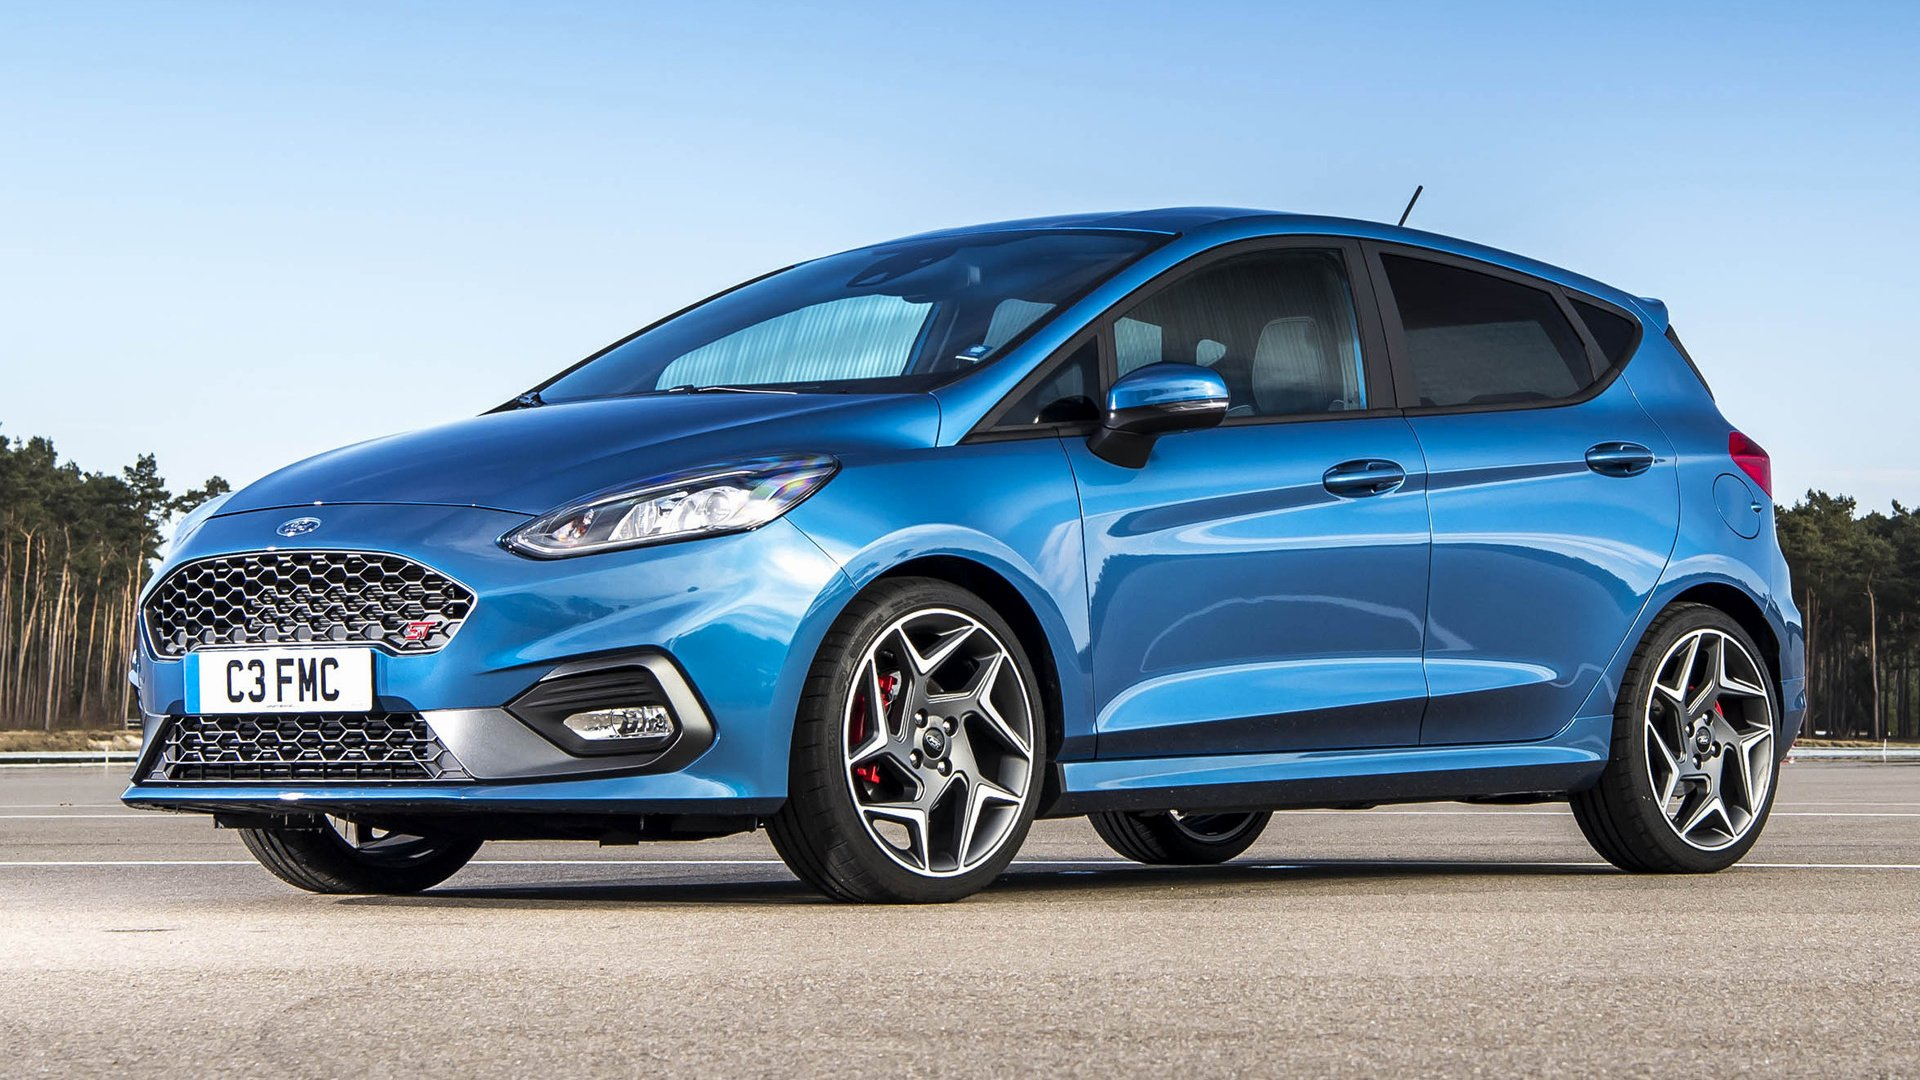 Fiesta St Wallpaper Posted By Samantha Simpson